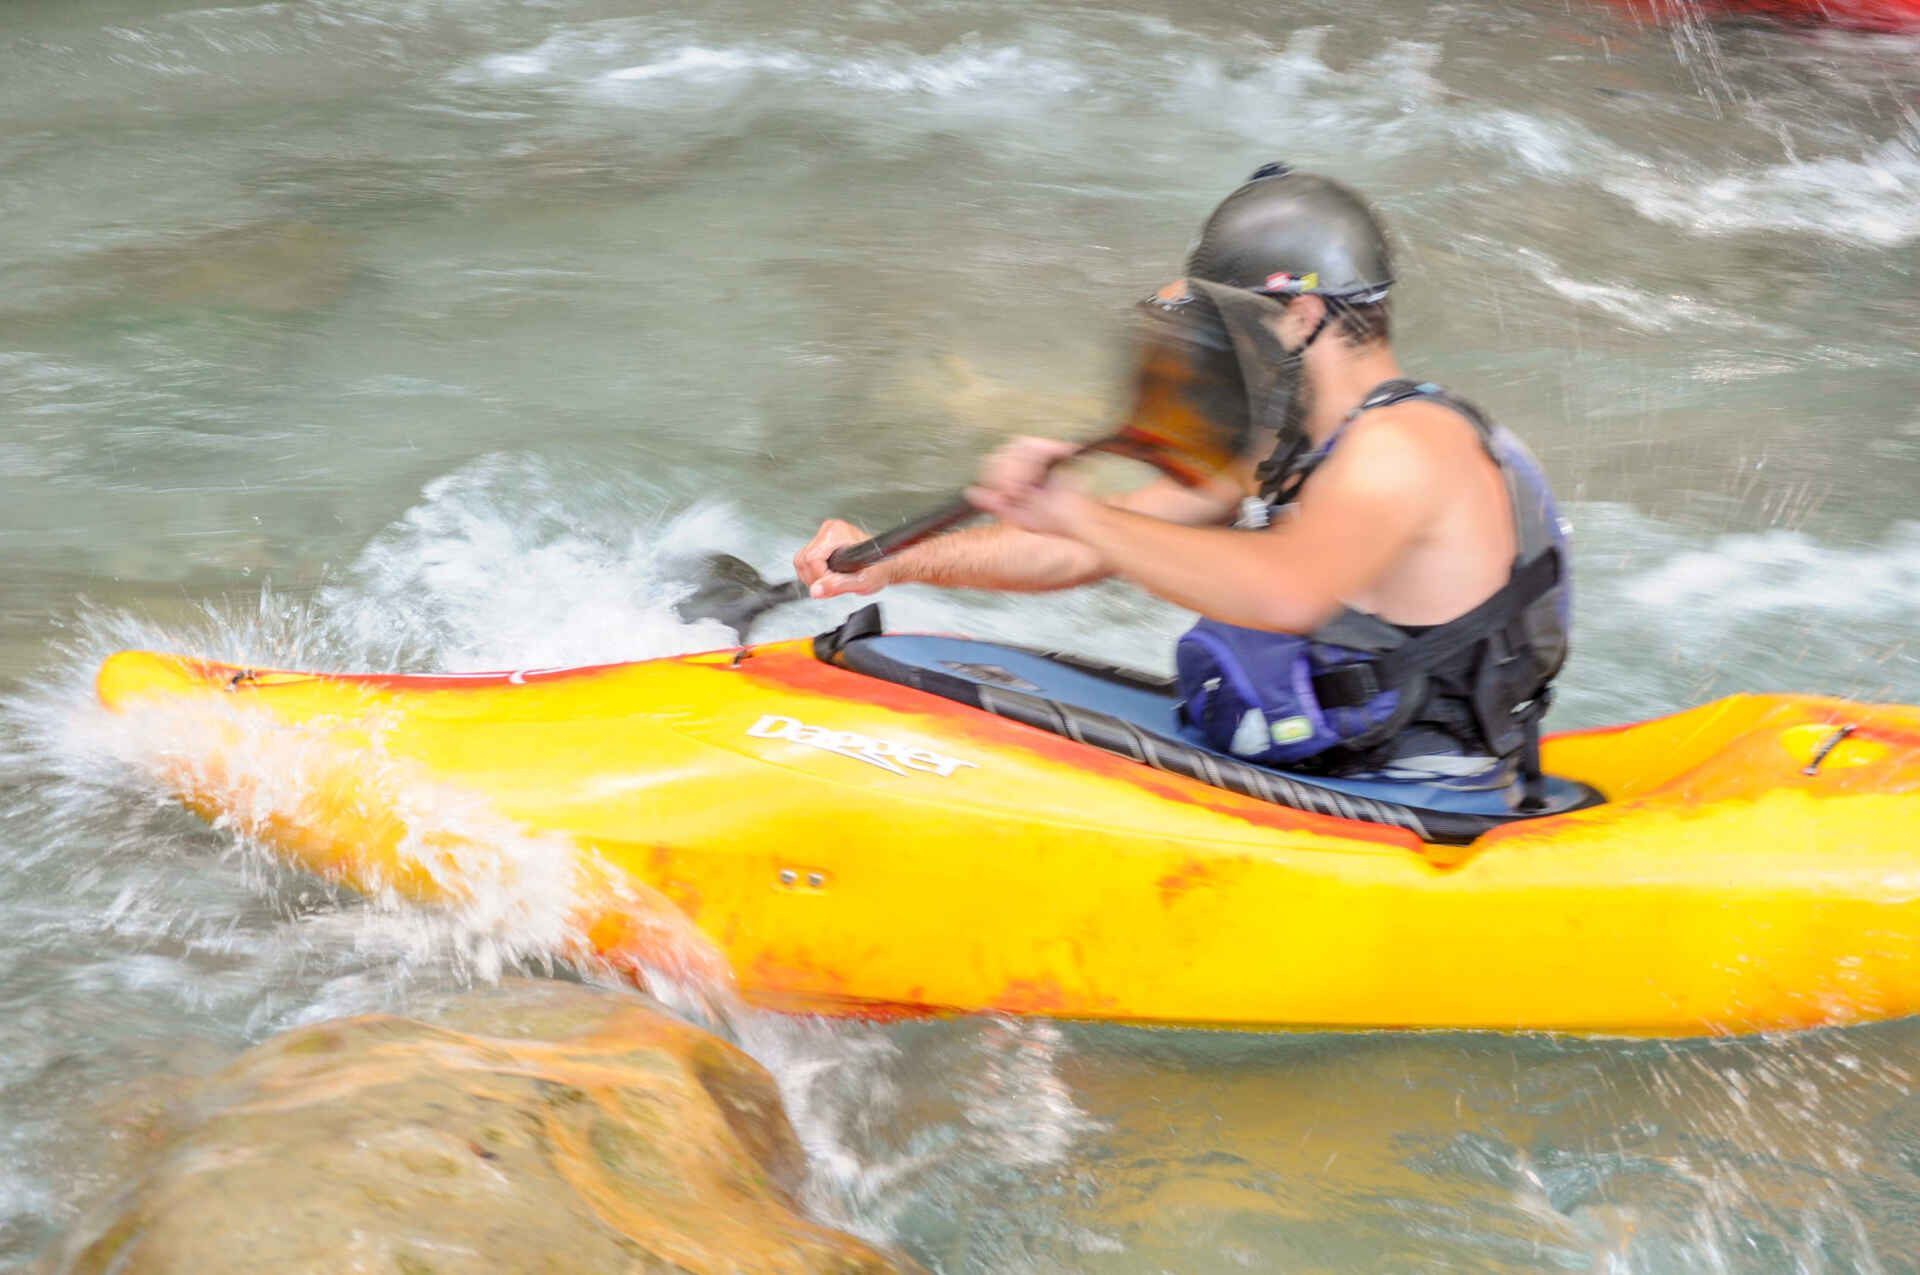 Kayaking and rafting on Lousios River in Peloponnese.